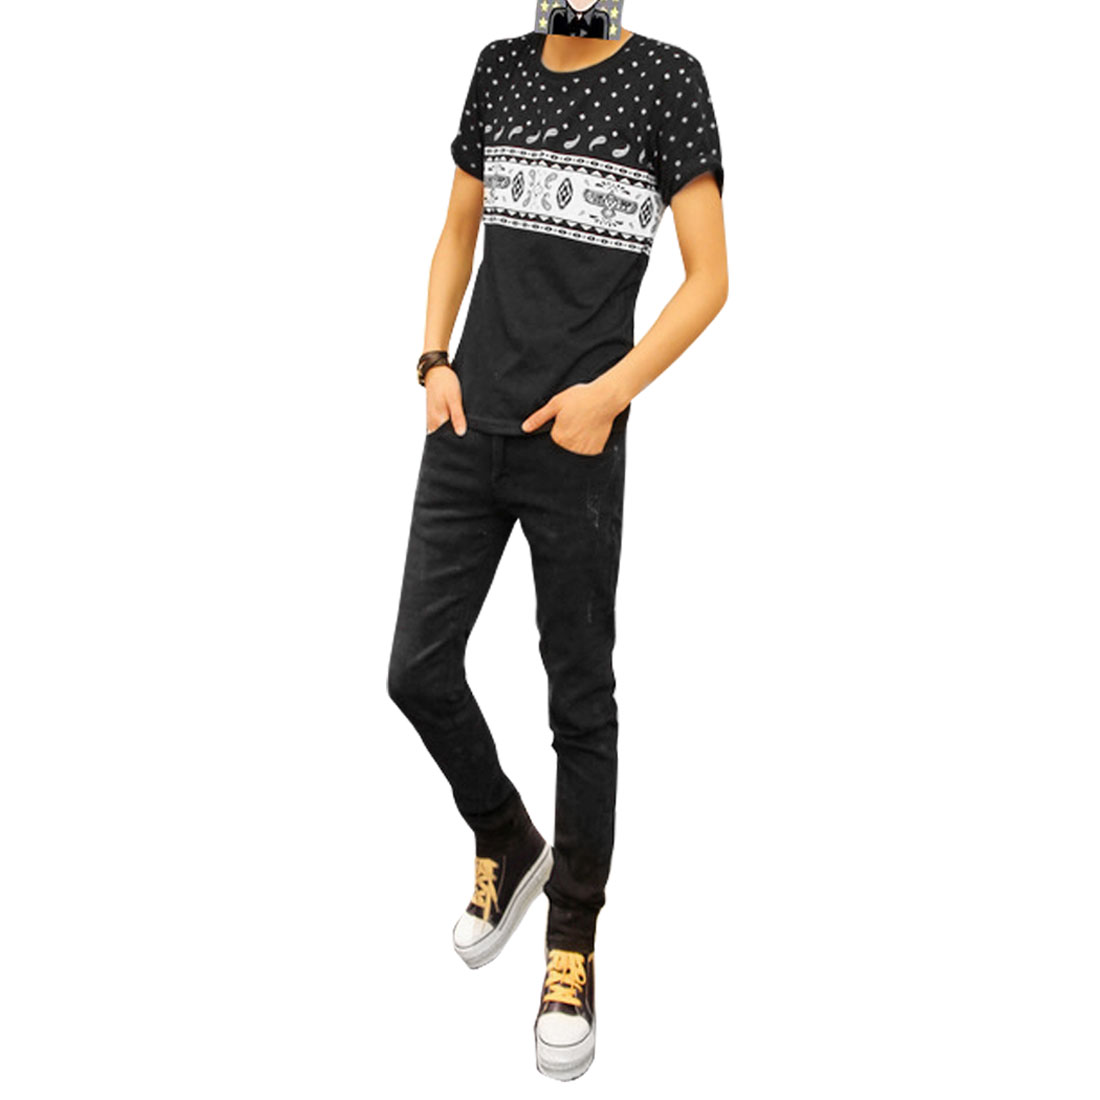 Paisley Pattern Summer Casual T-Shirt Top Black S for Man